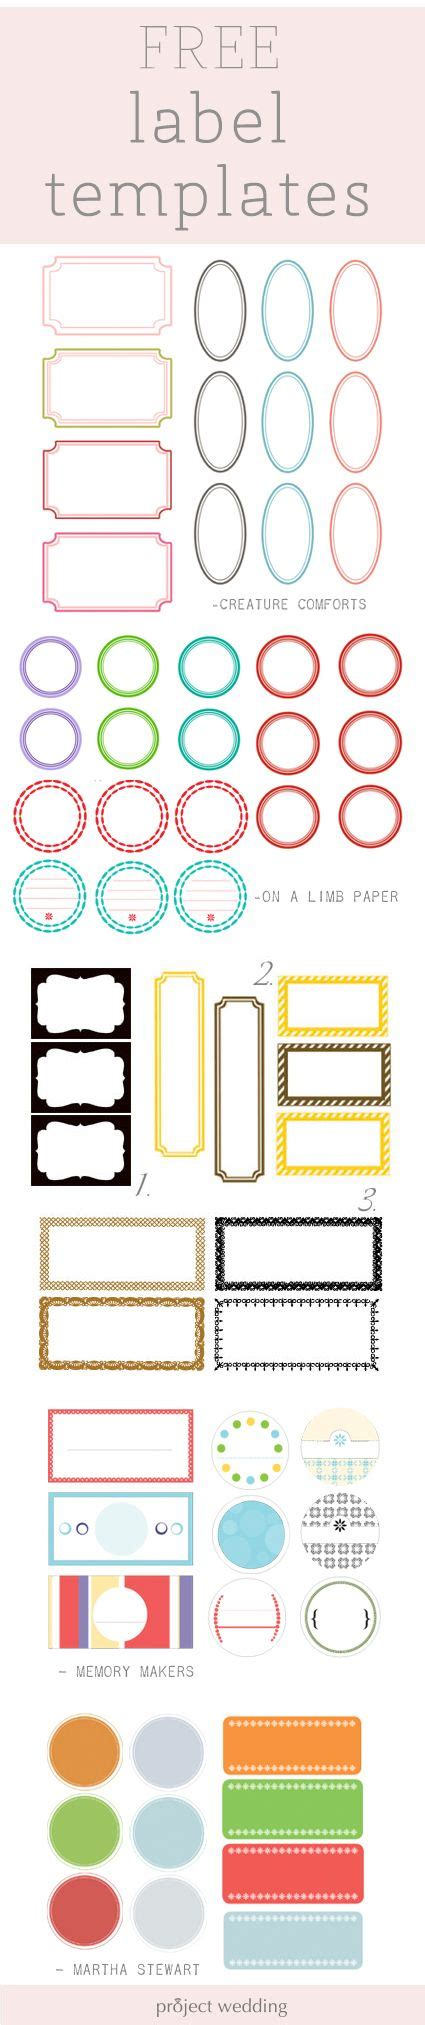 2 125 x 1 6875 label template best and various templates